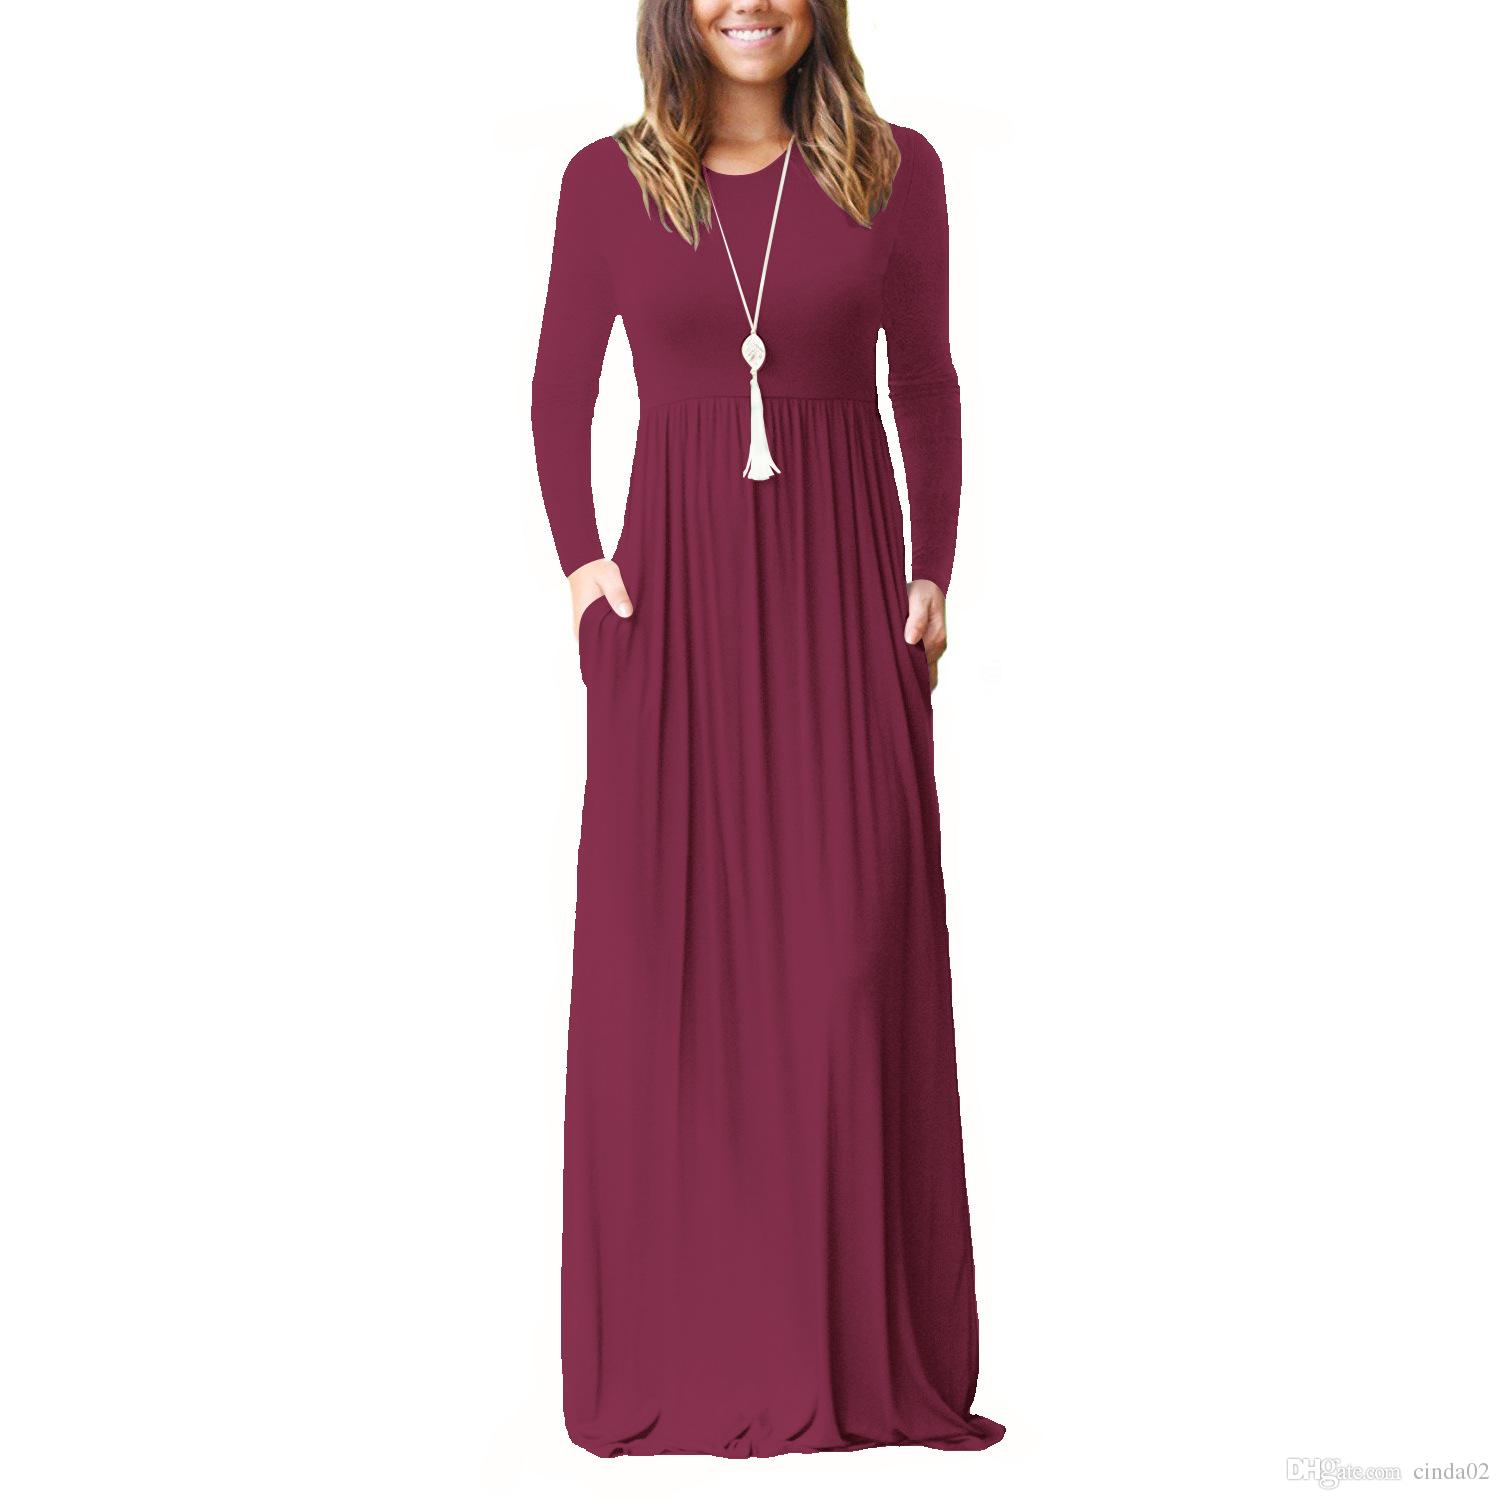 9485b7af3764 Maxi Casual Dress Women Fashion Loose Dresses Solid Long Sleeve Dresses  Round Collar Long Sexy Elegant Women Dress Purple Dress Special Occasion  Dresses ...